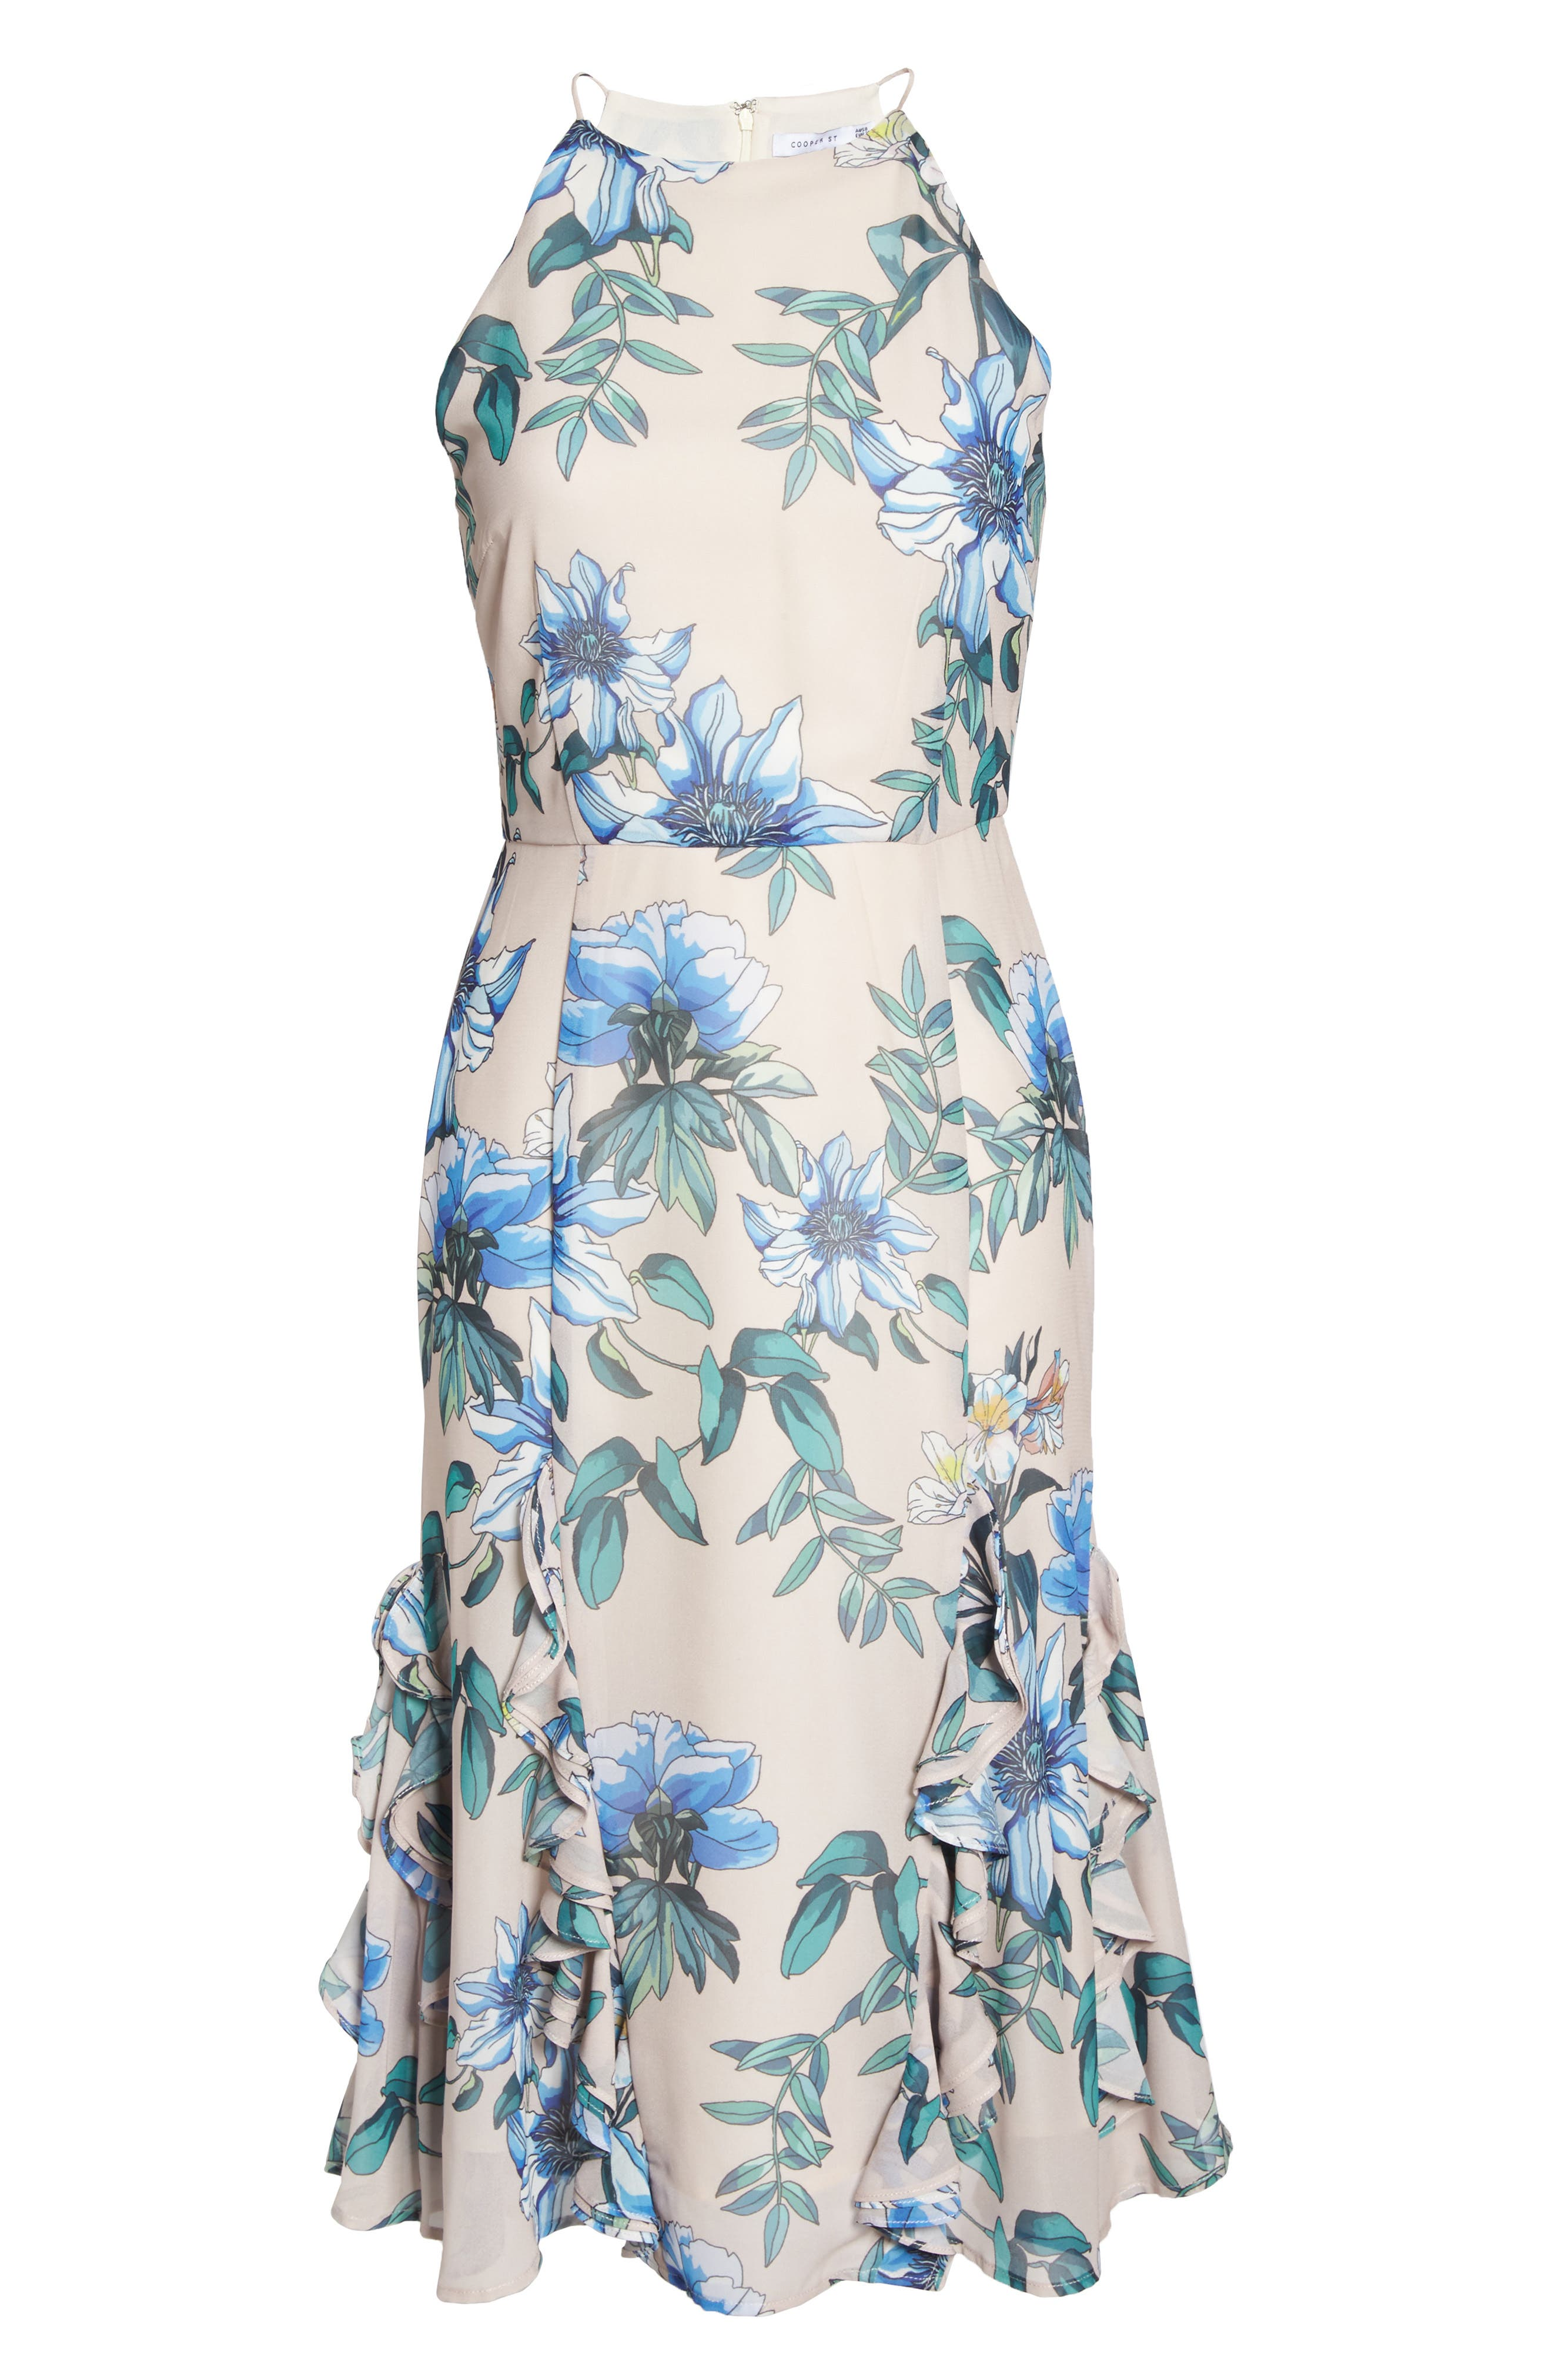 Floral Courtyard Midi Dress,                             Alternate thumbnail 6, color,